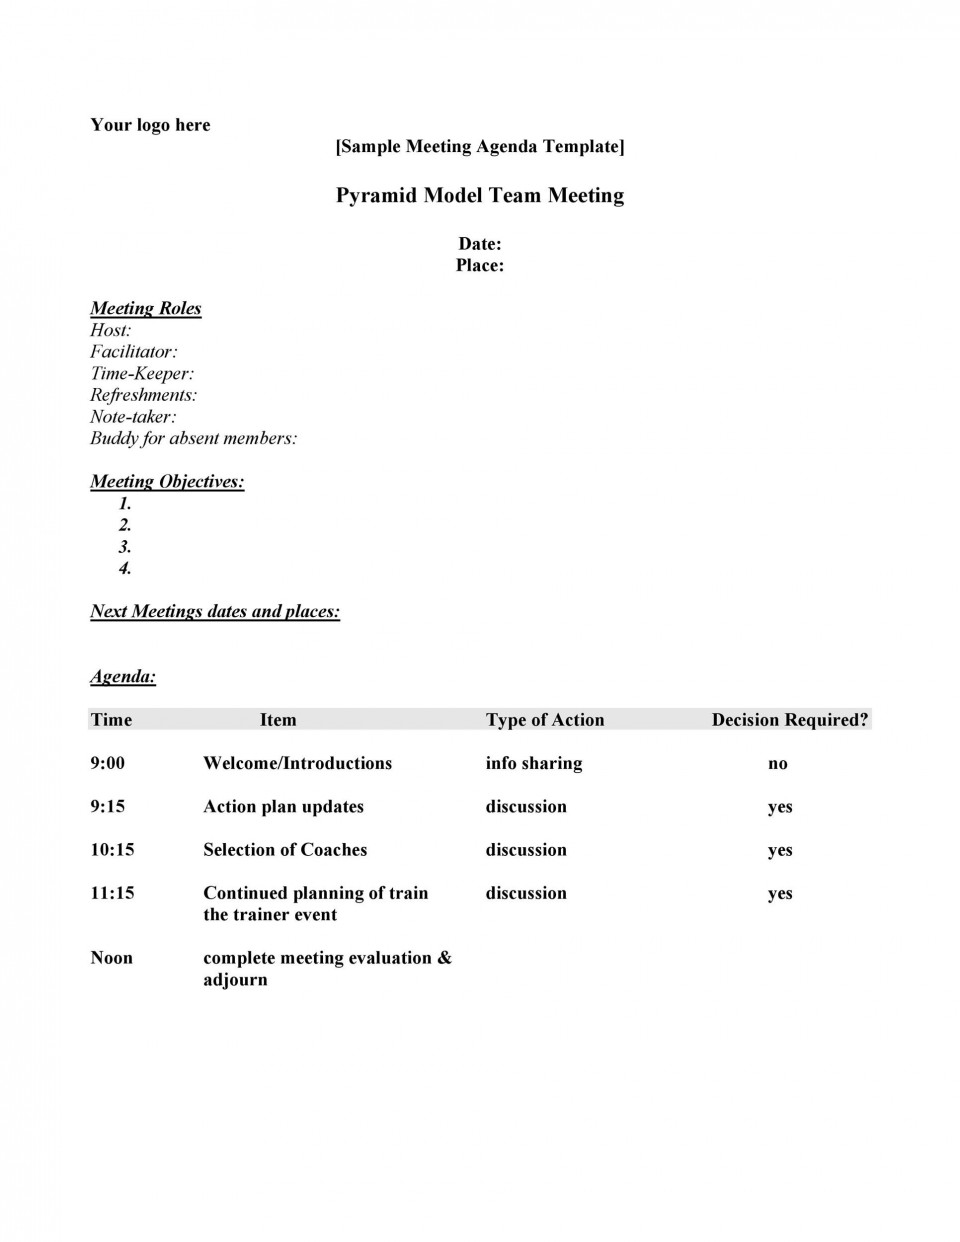 007 Marvelou Meeting Agenda Template Word Picture  Microsoft Board 2010 Example960